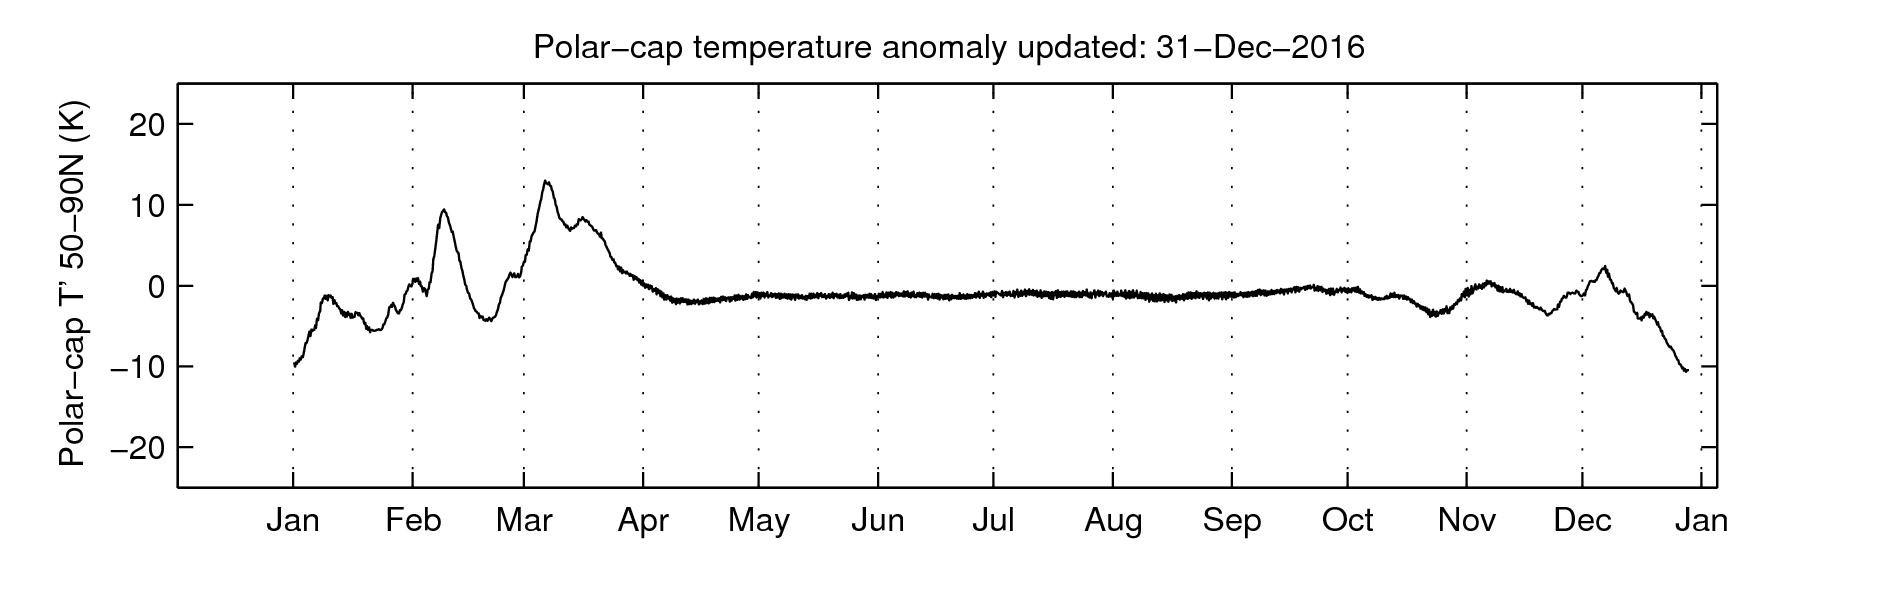 Polar cap temperature anomalies at 10 hPa